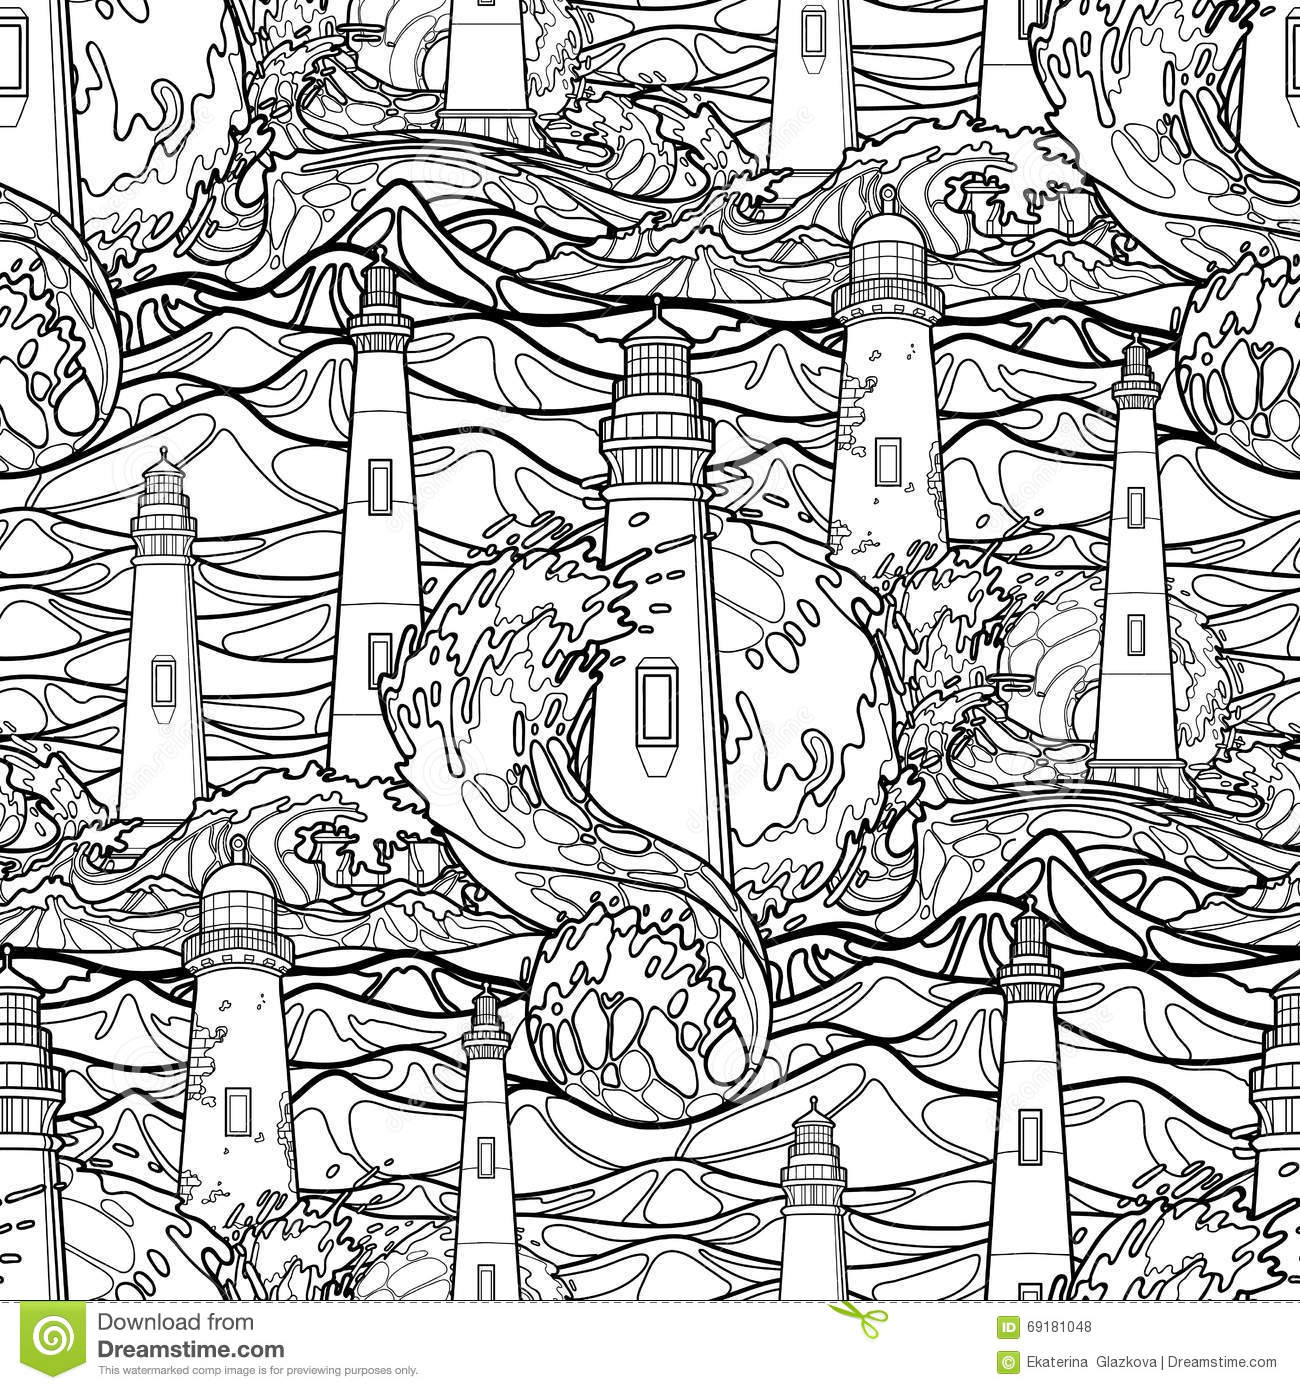 free coloring pages graphic - photo#48